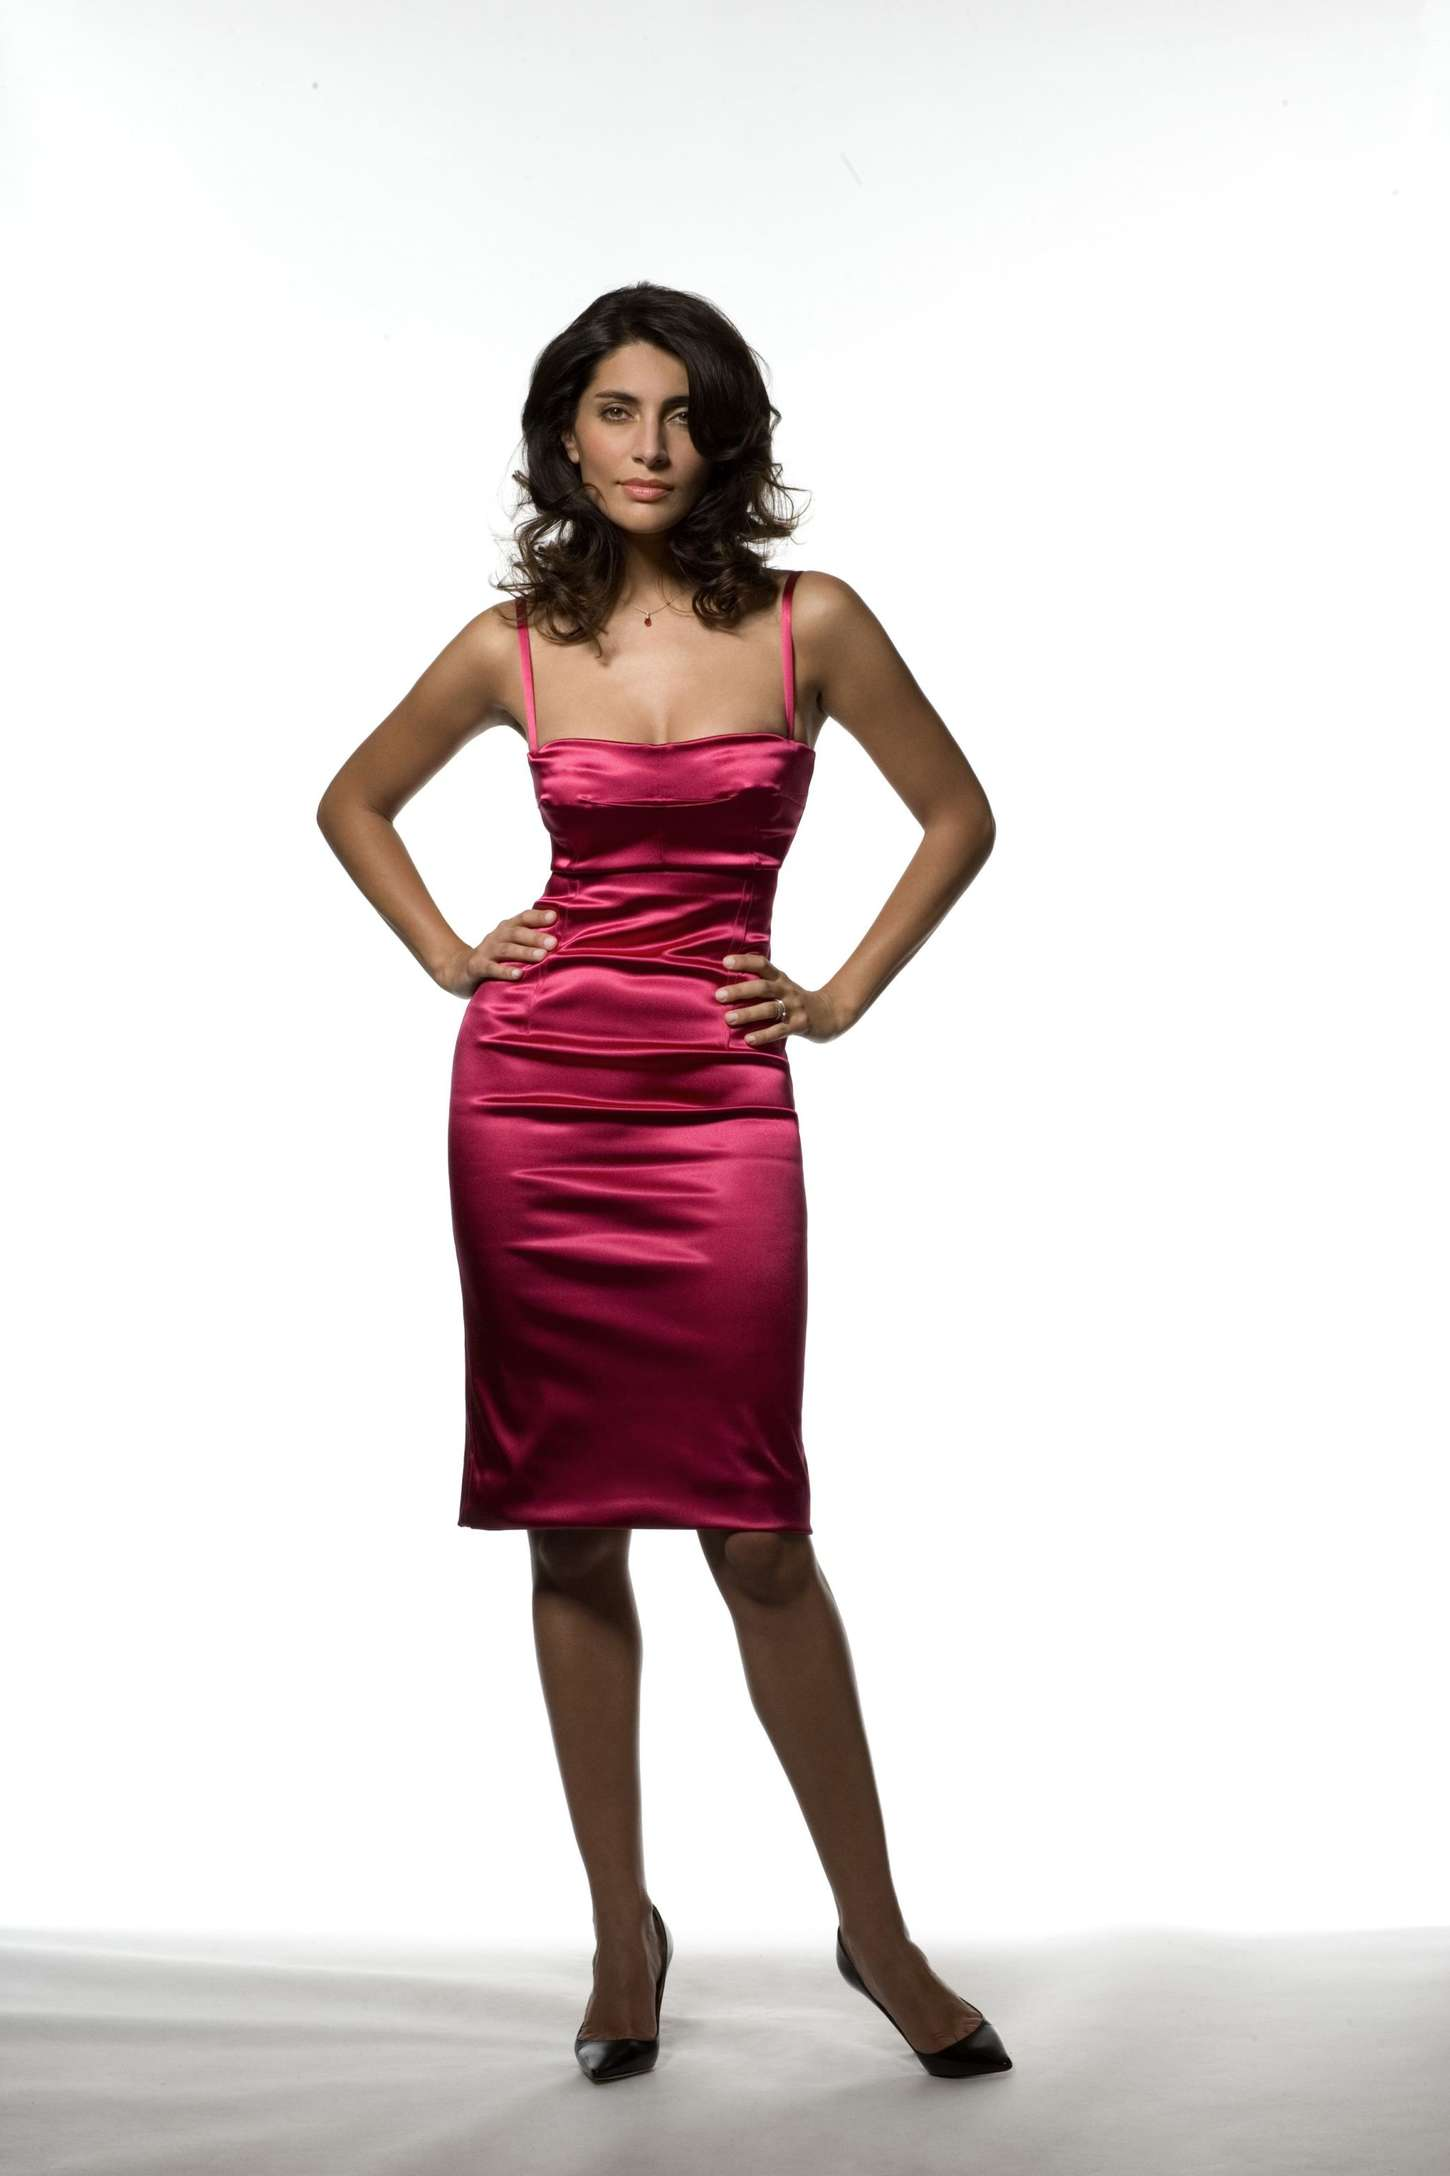 Caterina Murino (born 1977) Caterina Murino (born 1977) new picture